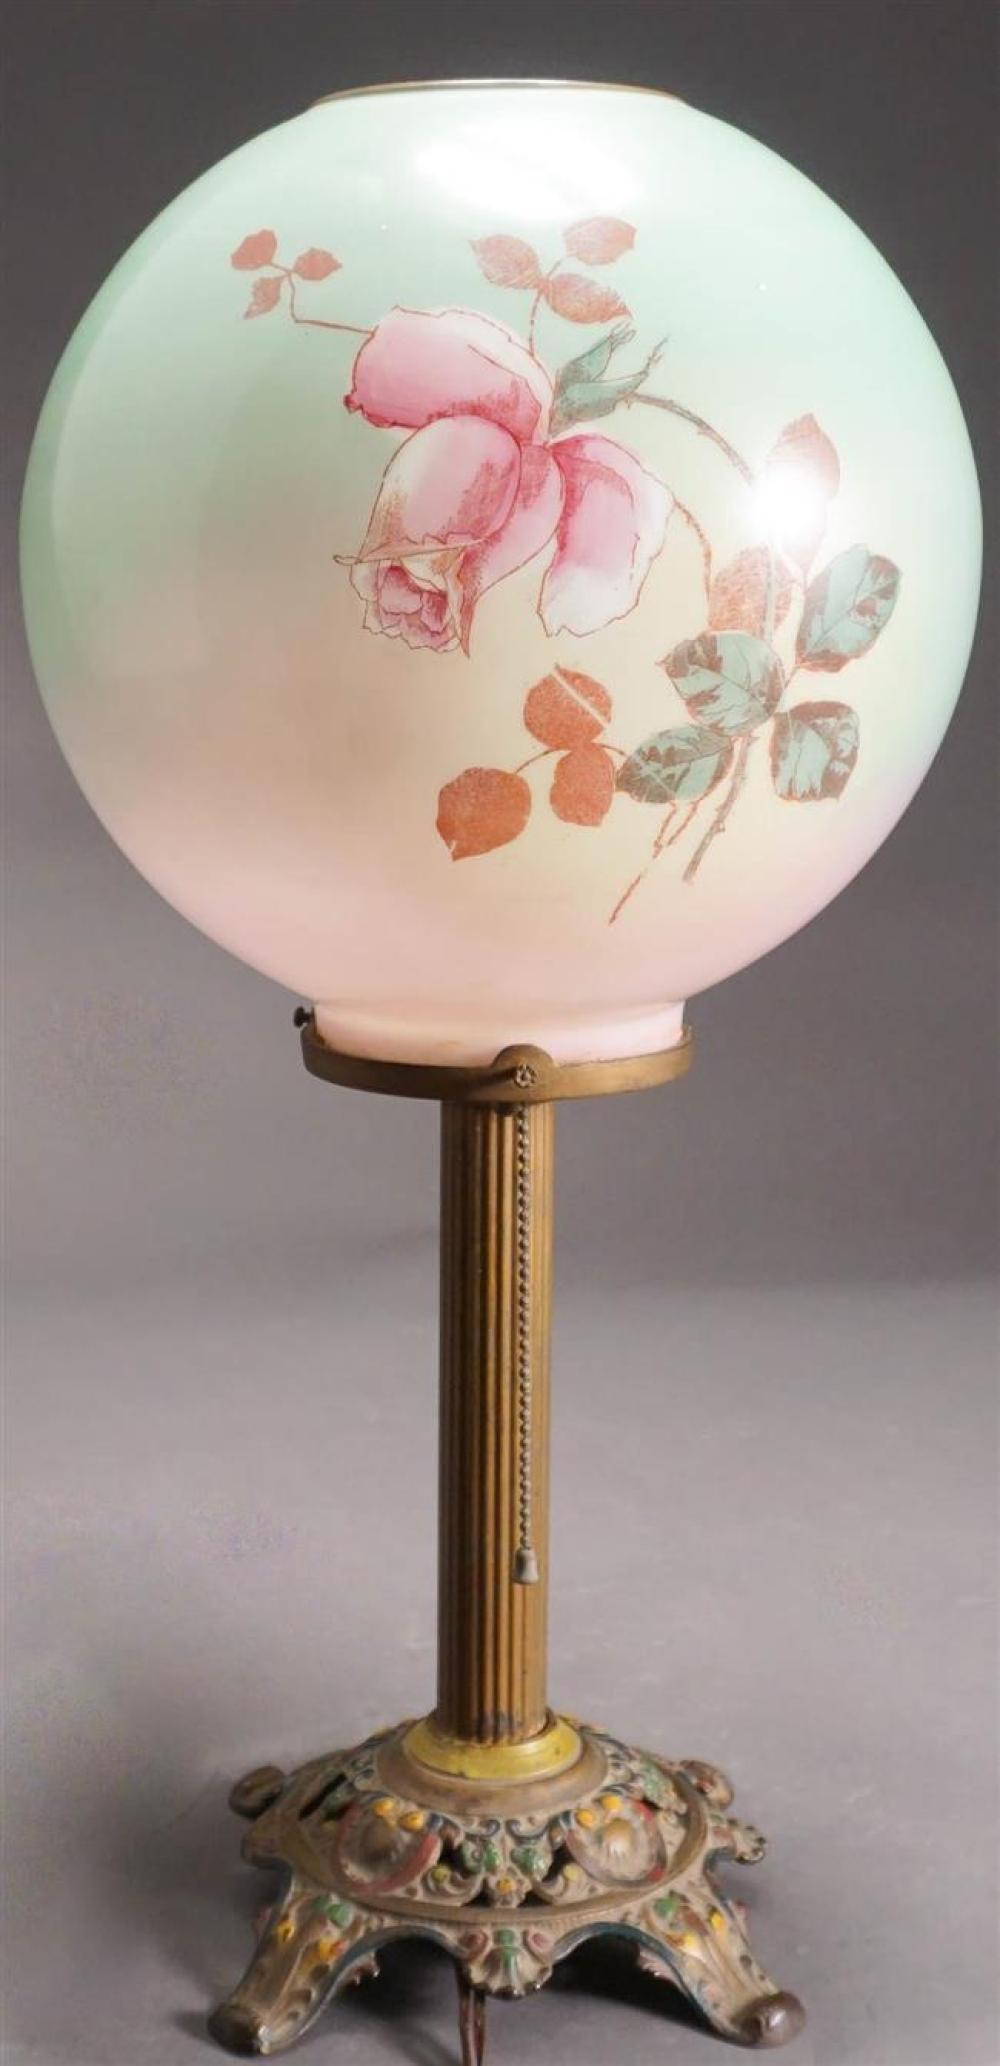 Polychrome Decorated Patinated Metal Base Floral Decorated Glass Table Lamp, H: 21 inches